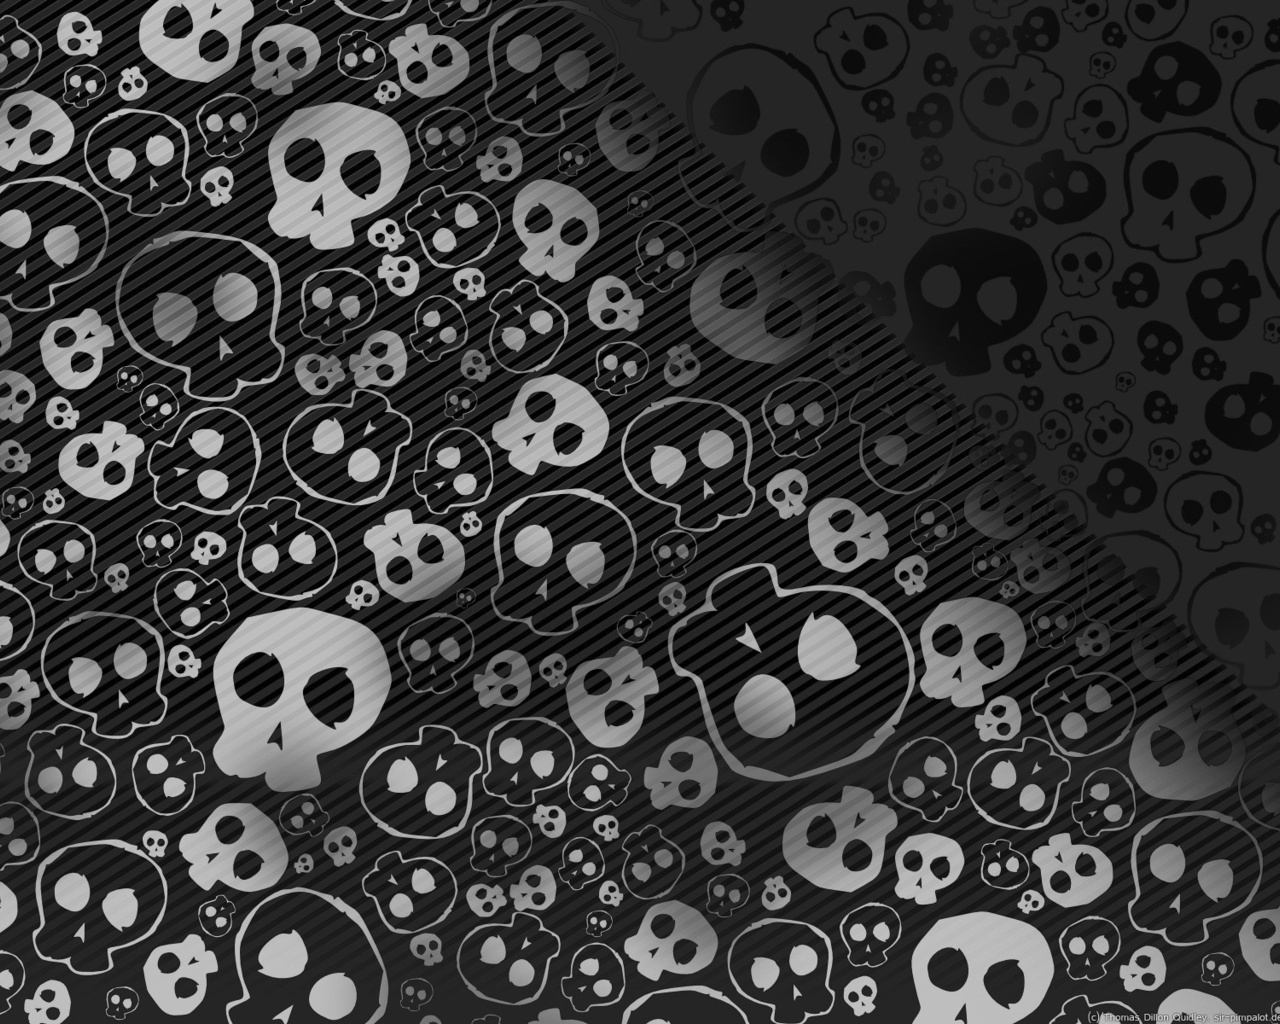 Black and White Skulls Wallpaper   Black Wallpaper 28520501 1280x1024